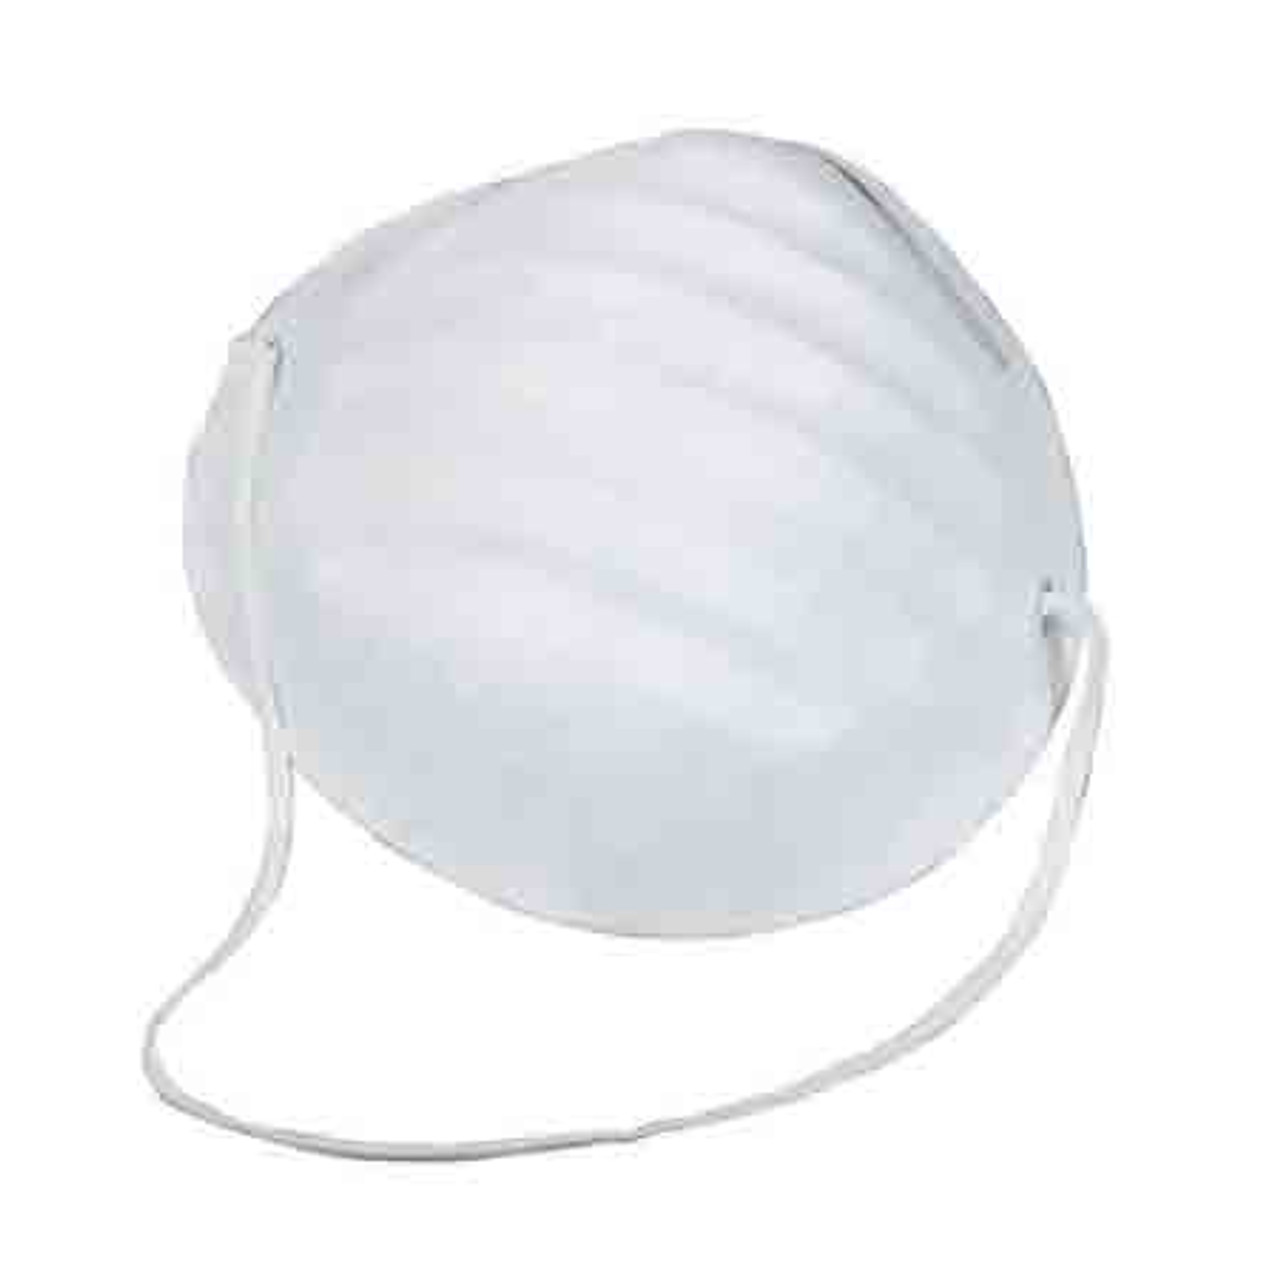 Swell Disposable Dust Masks 50 Box Pdpeps Interior Chair Design Pdpepsorg